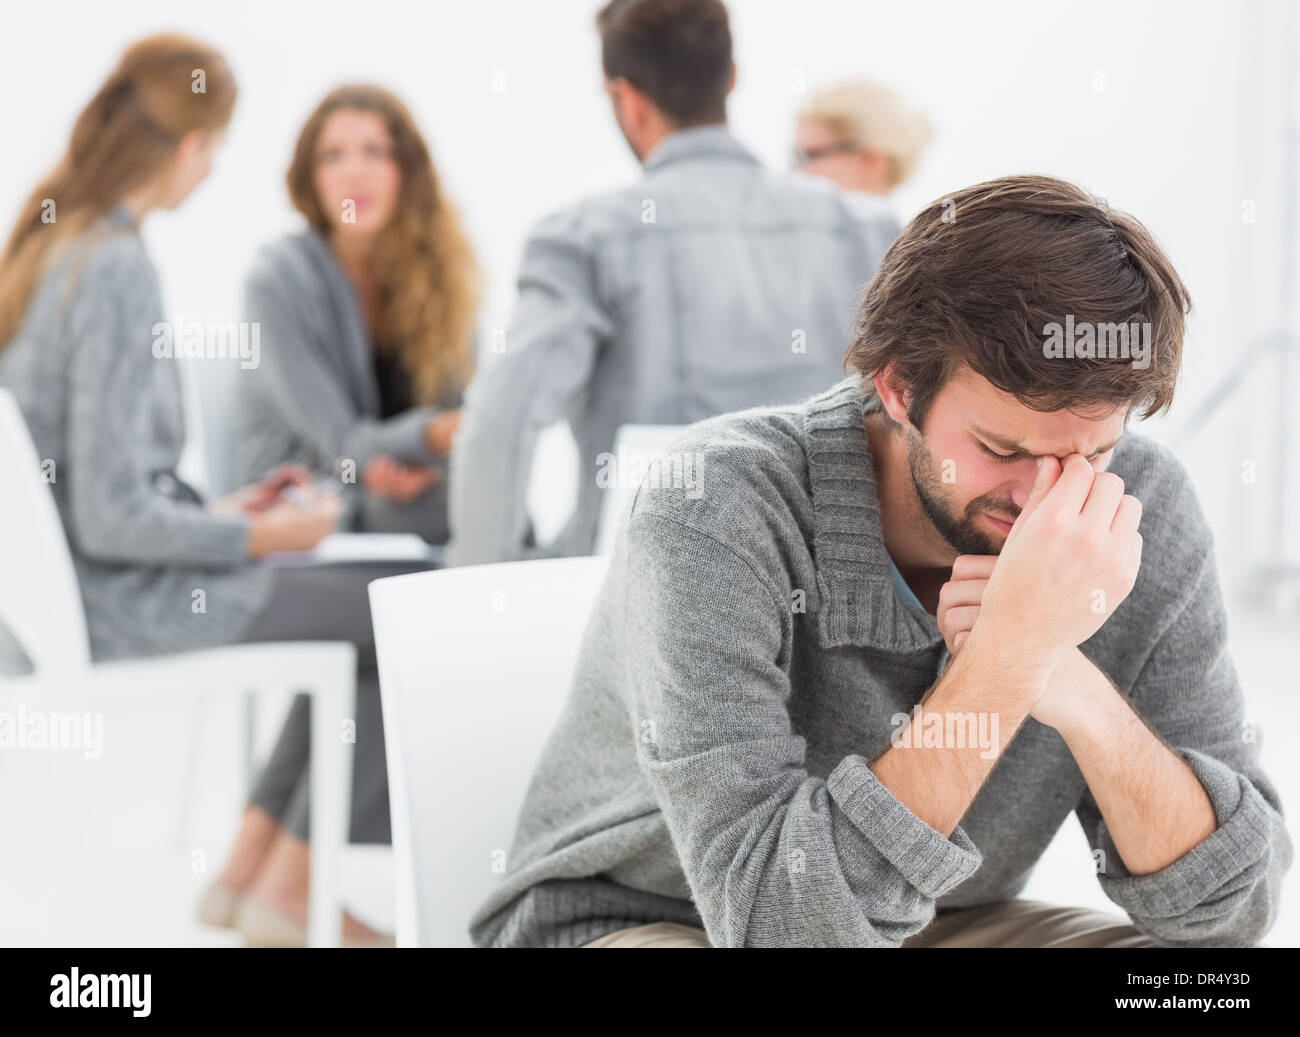 Therapy in session sitting in a circle while man in foreground - Stock Image